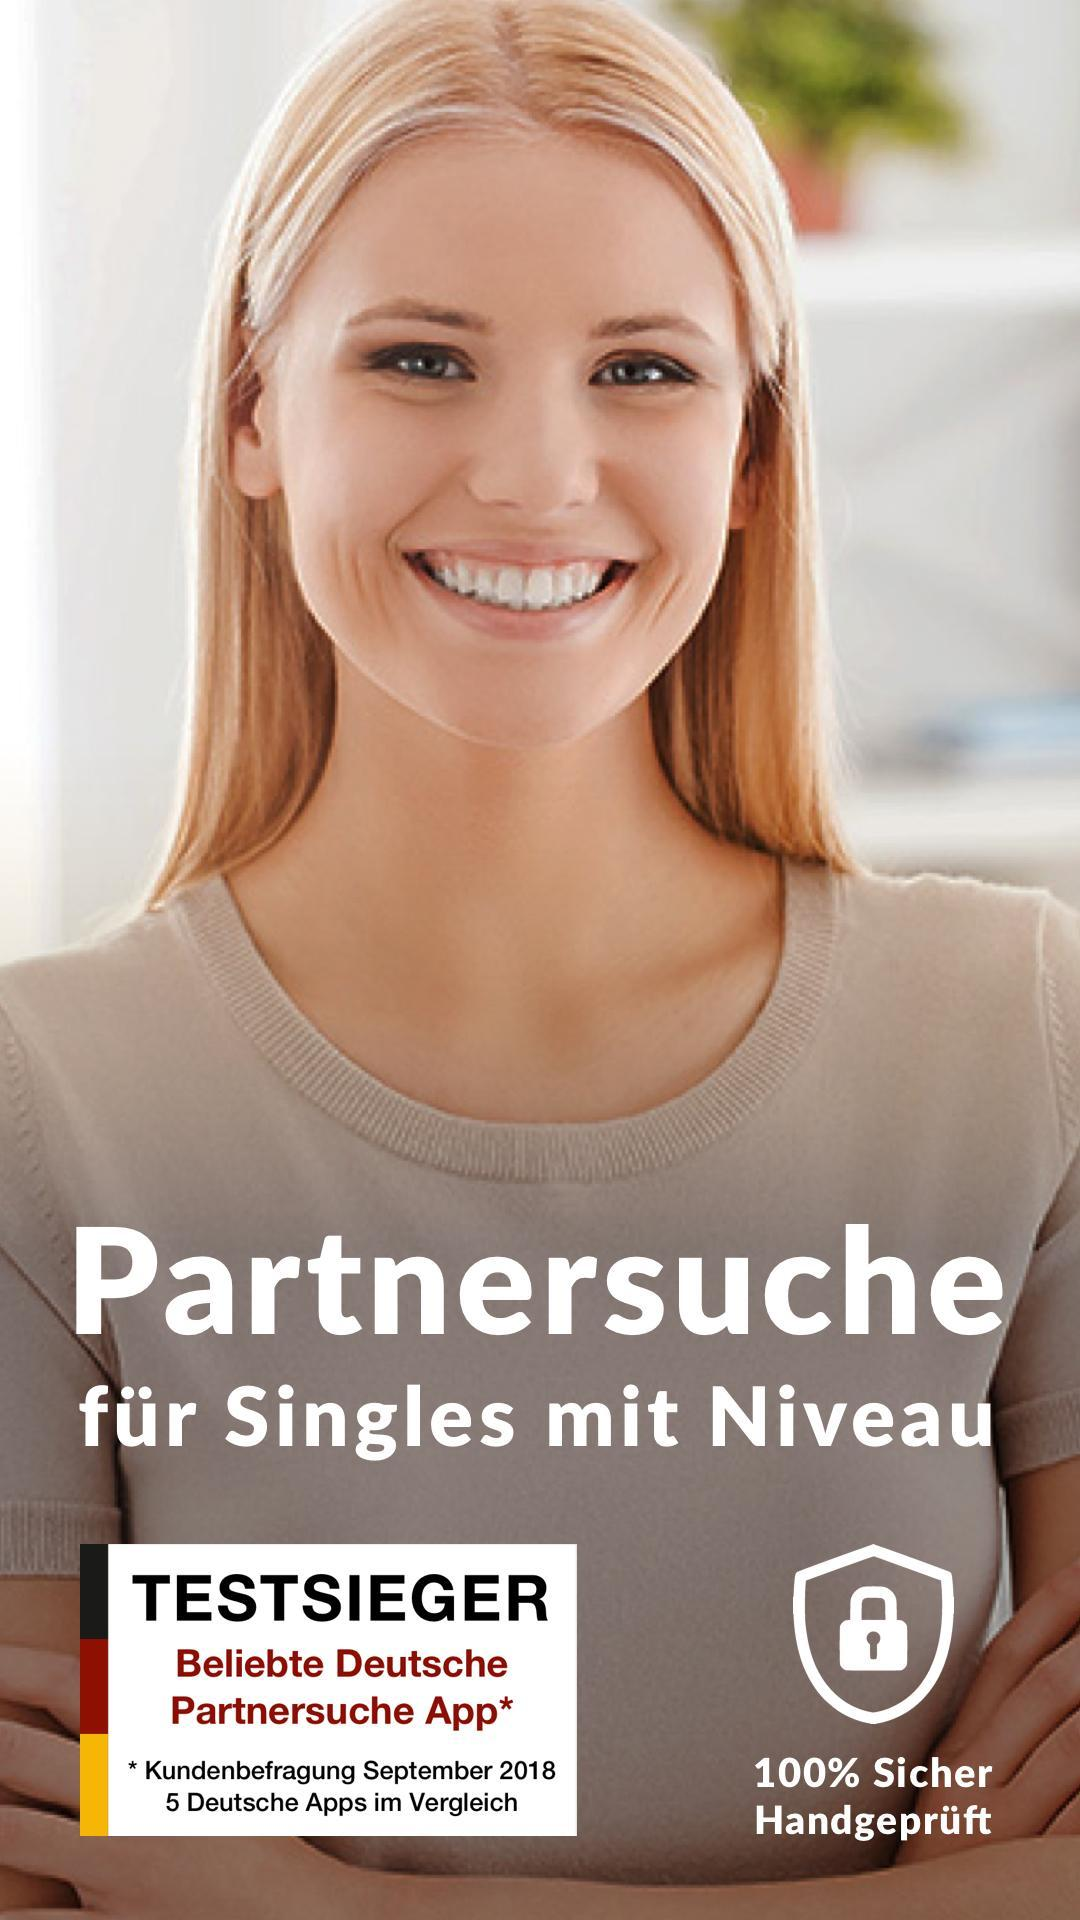 Dating partnersuche